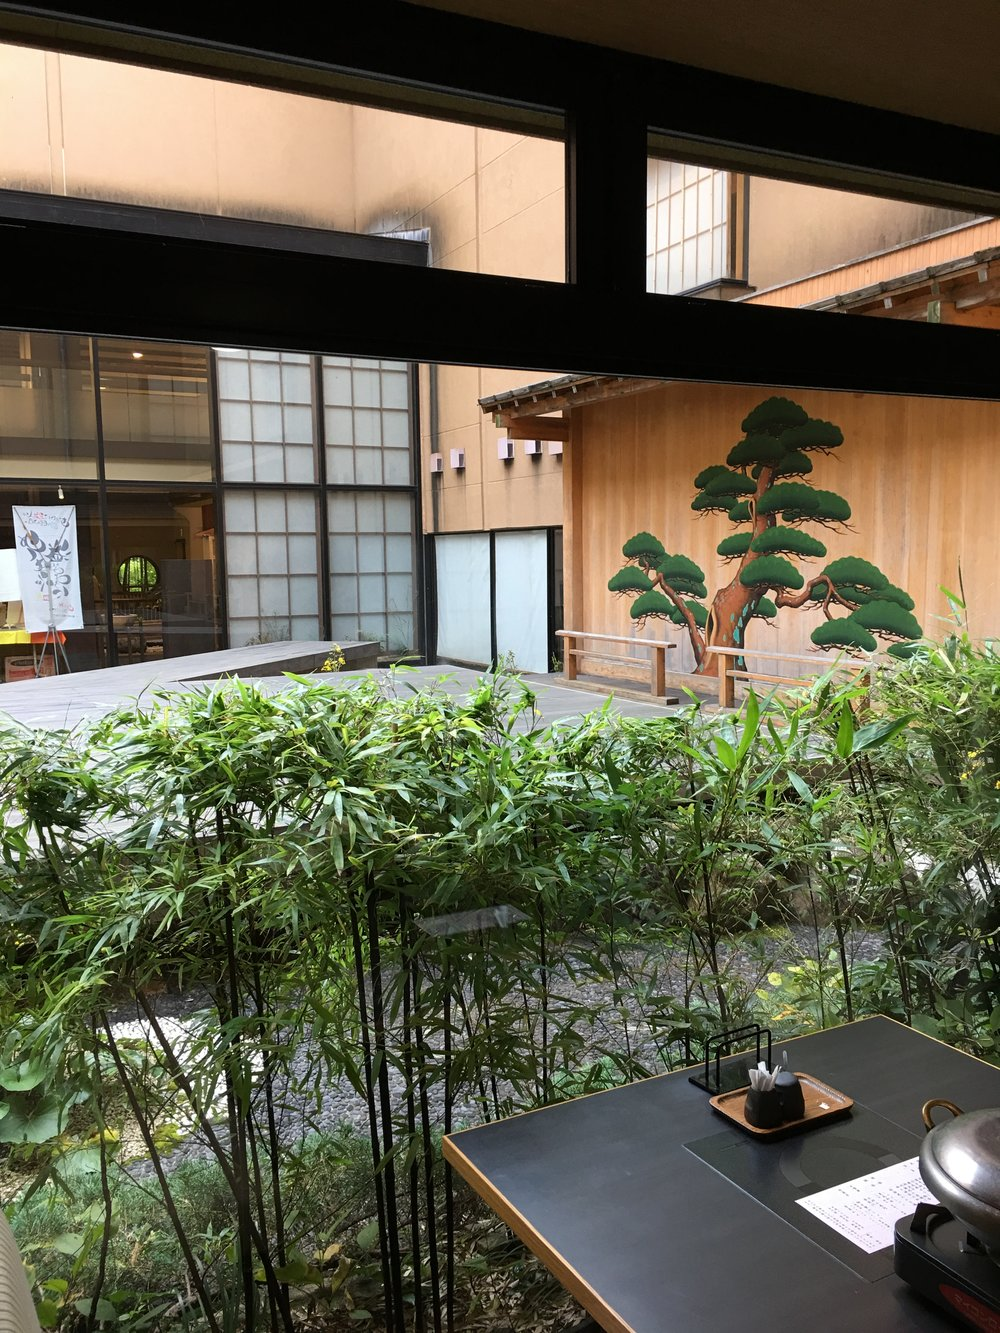 The restaurant presents itself with settings from both modern and traditional styles of Japanese display. Edo-like fashioned Japanese black pine is painted on the smooth wooden surface beyond the transparent glass wall. More of the restaurant table and the left side of the open area view beyond the glass barrier photo is shown:   here  .